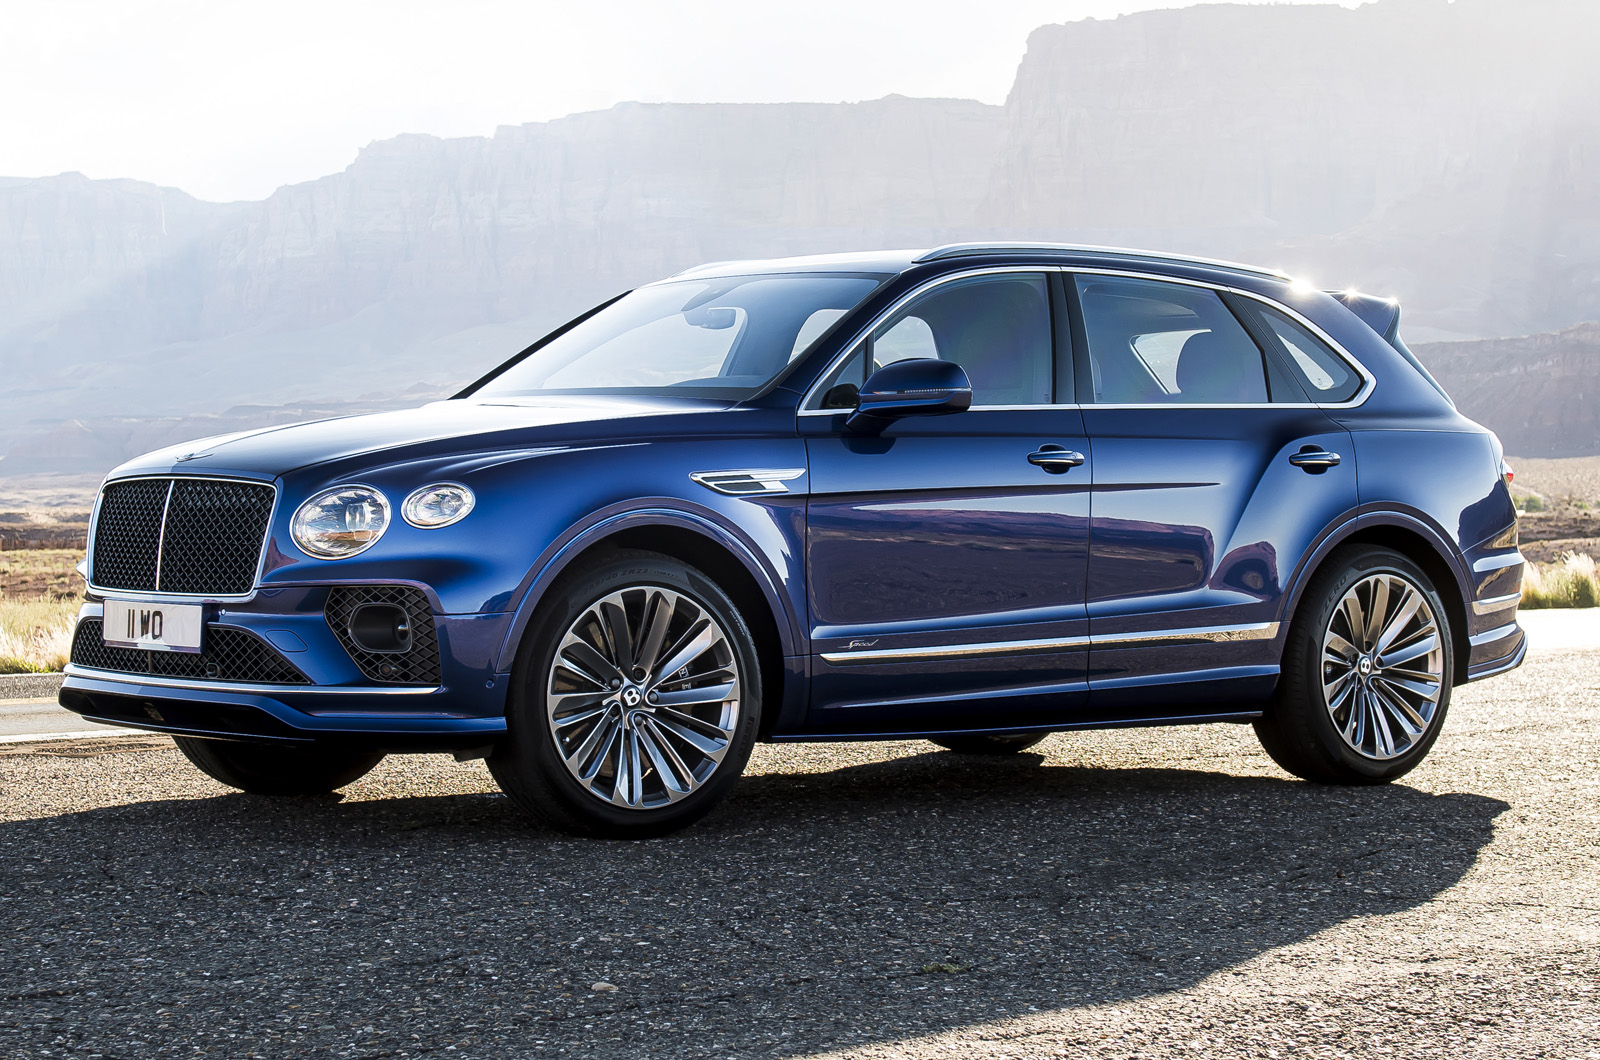 Bentley Bentayga Speed unveiled